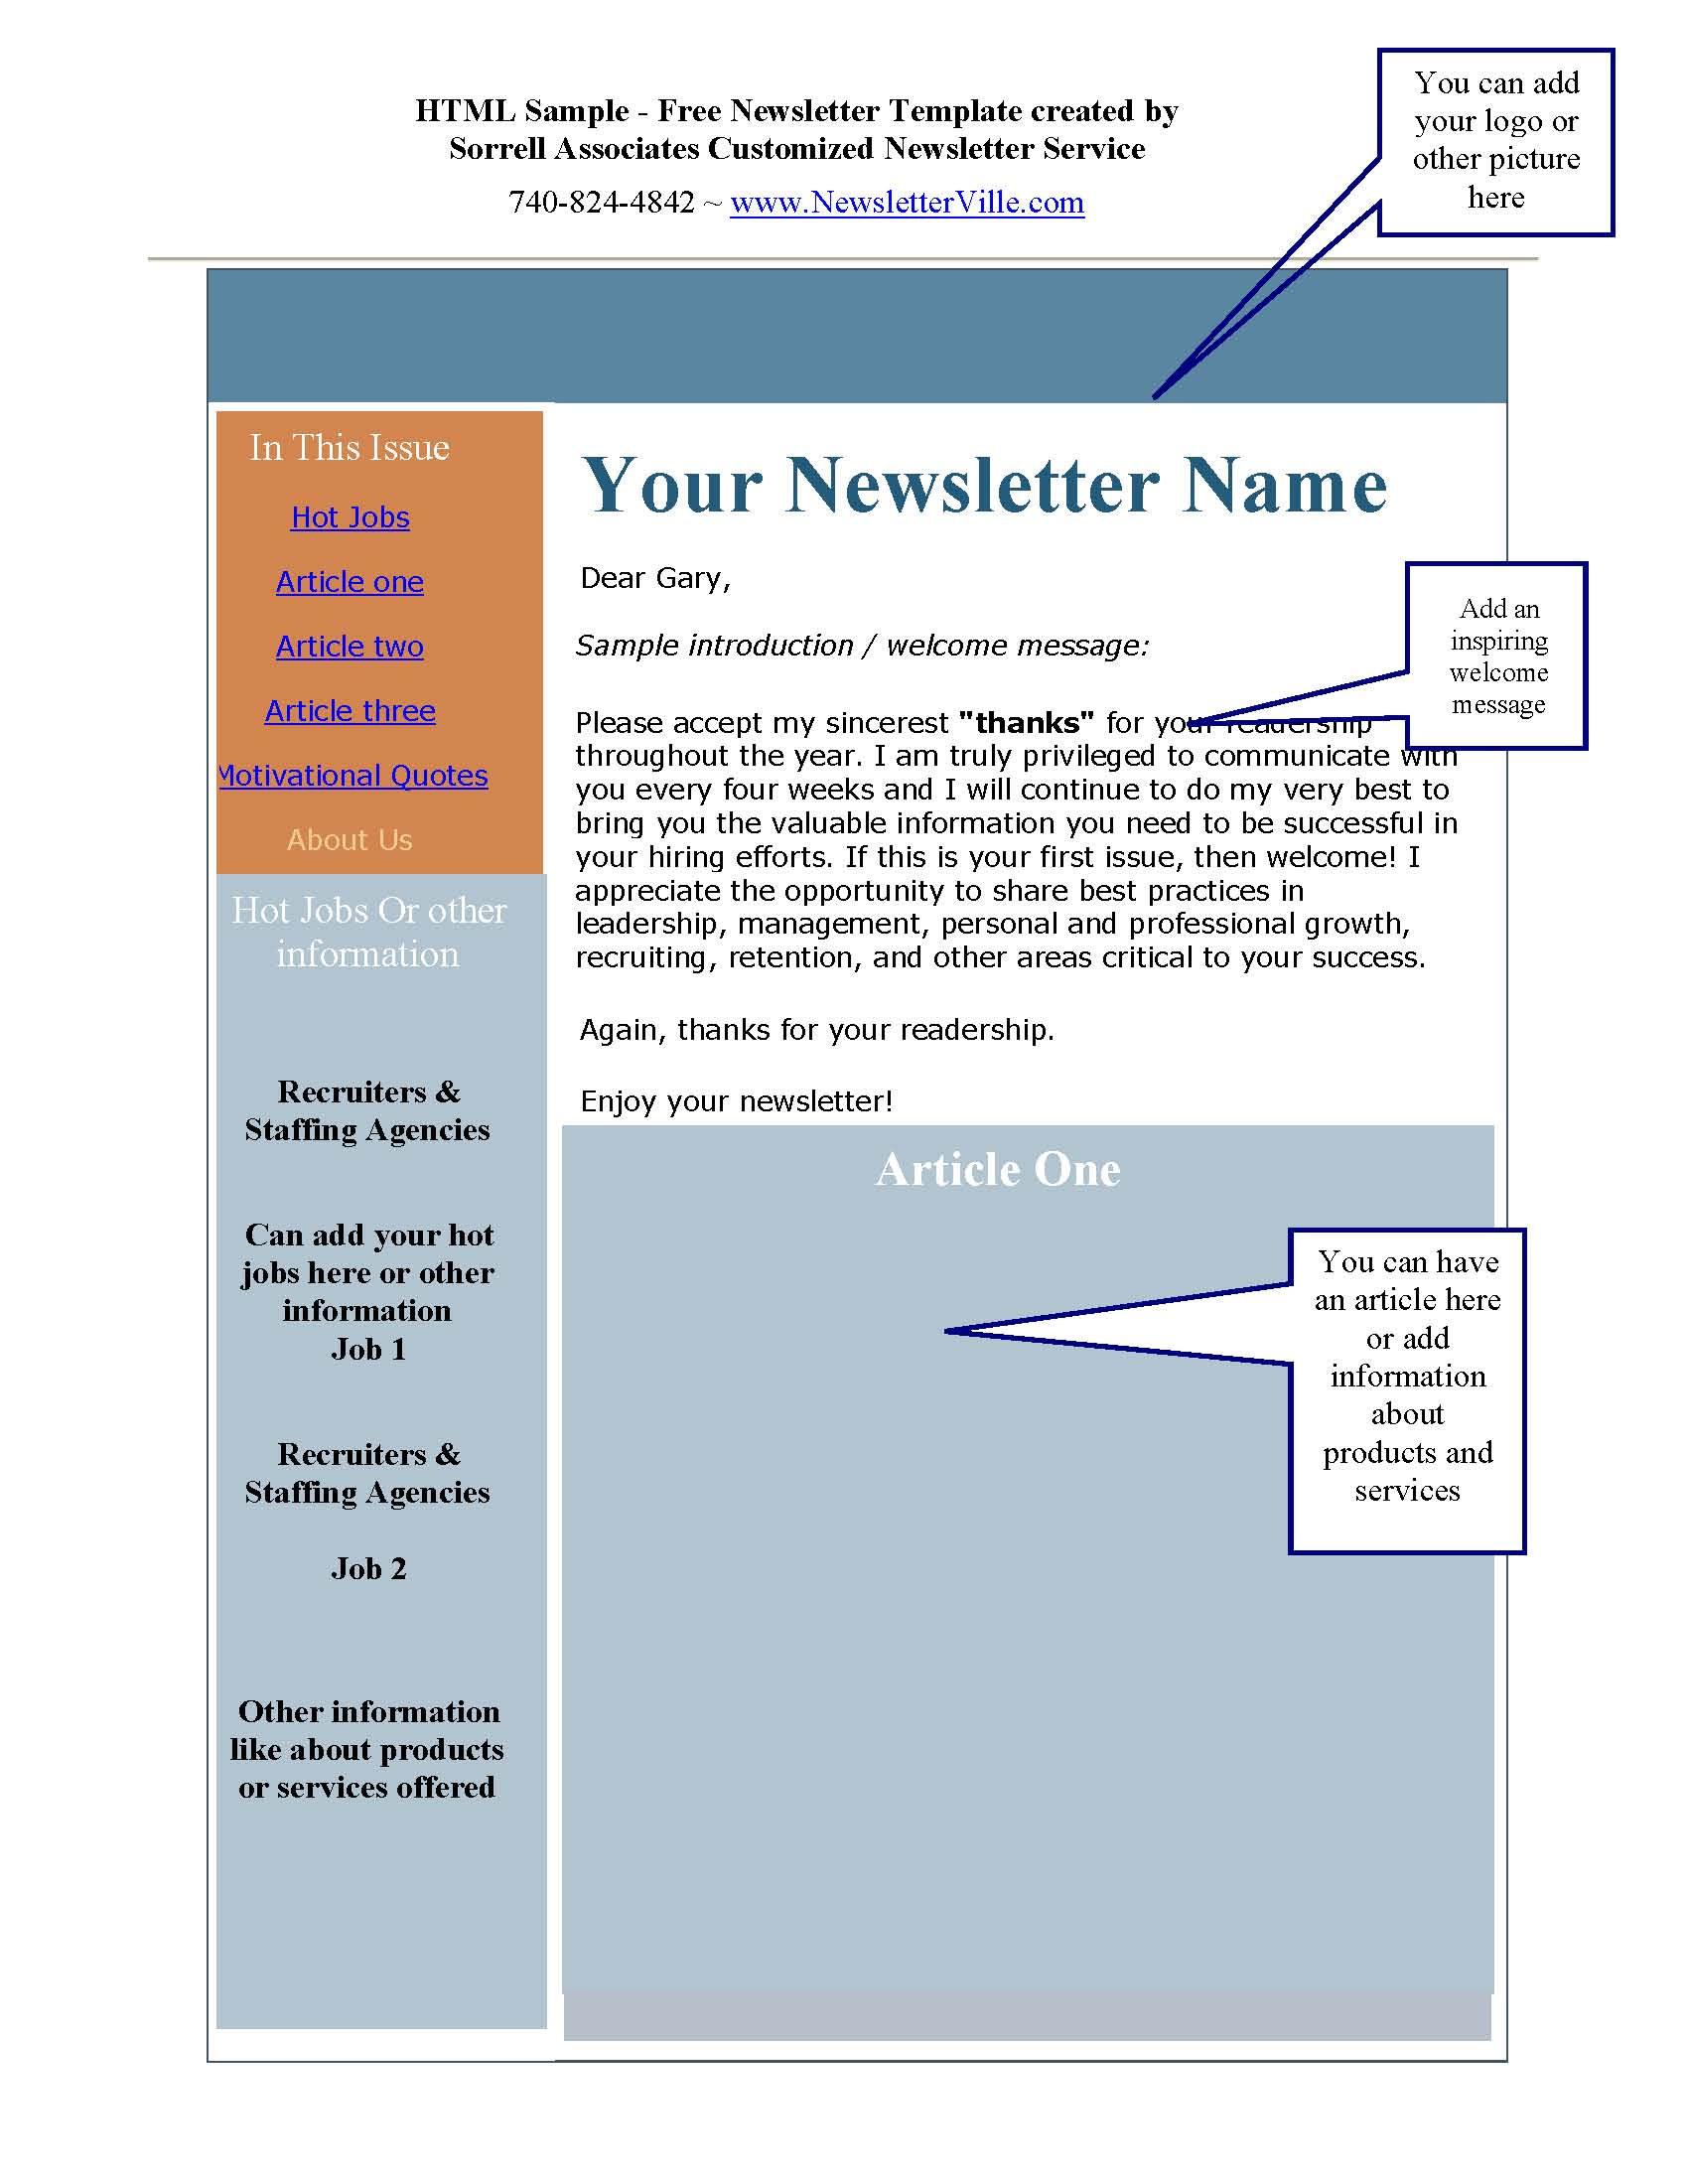 Newsletter Blog Articles Provided Plus Free Newsletter Design - Internal email newsletter templates